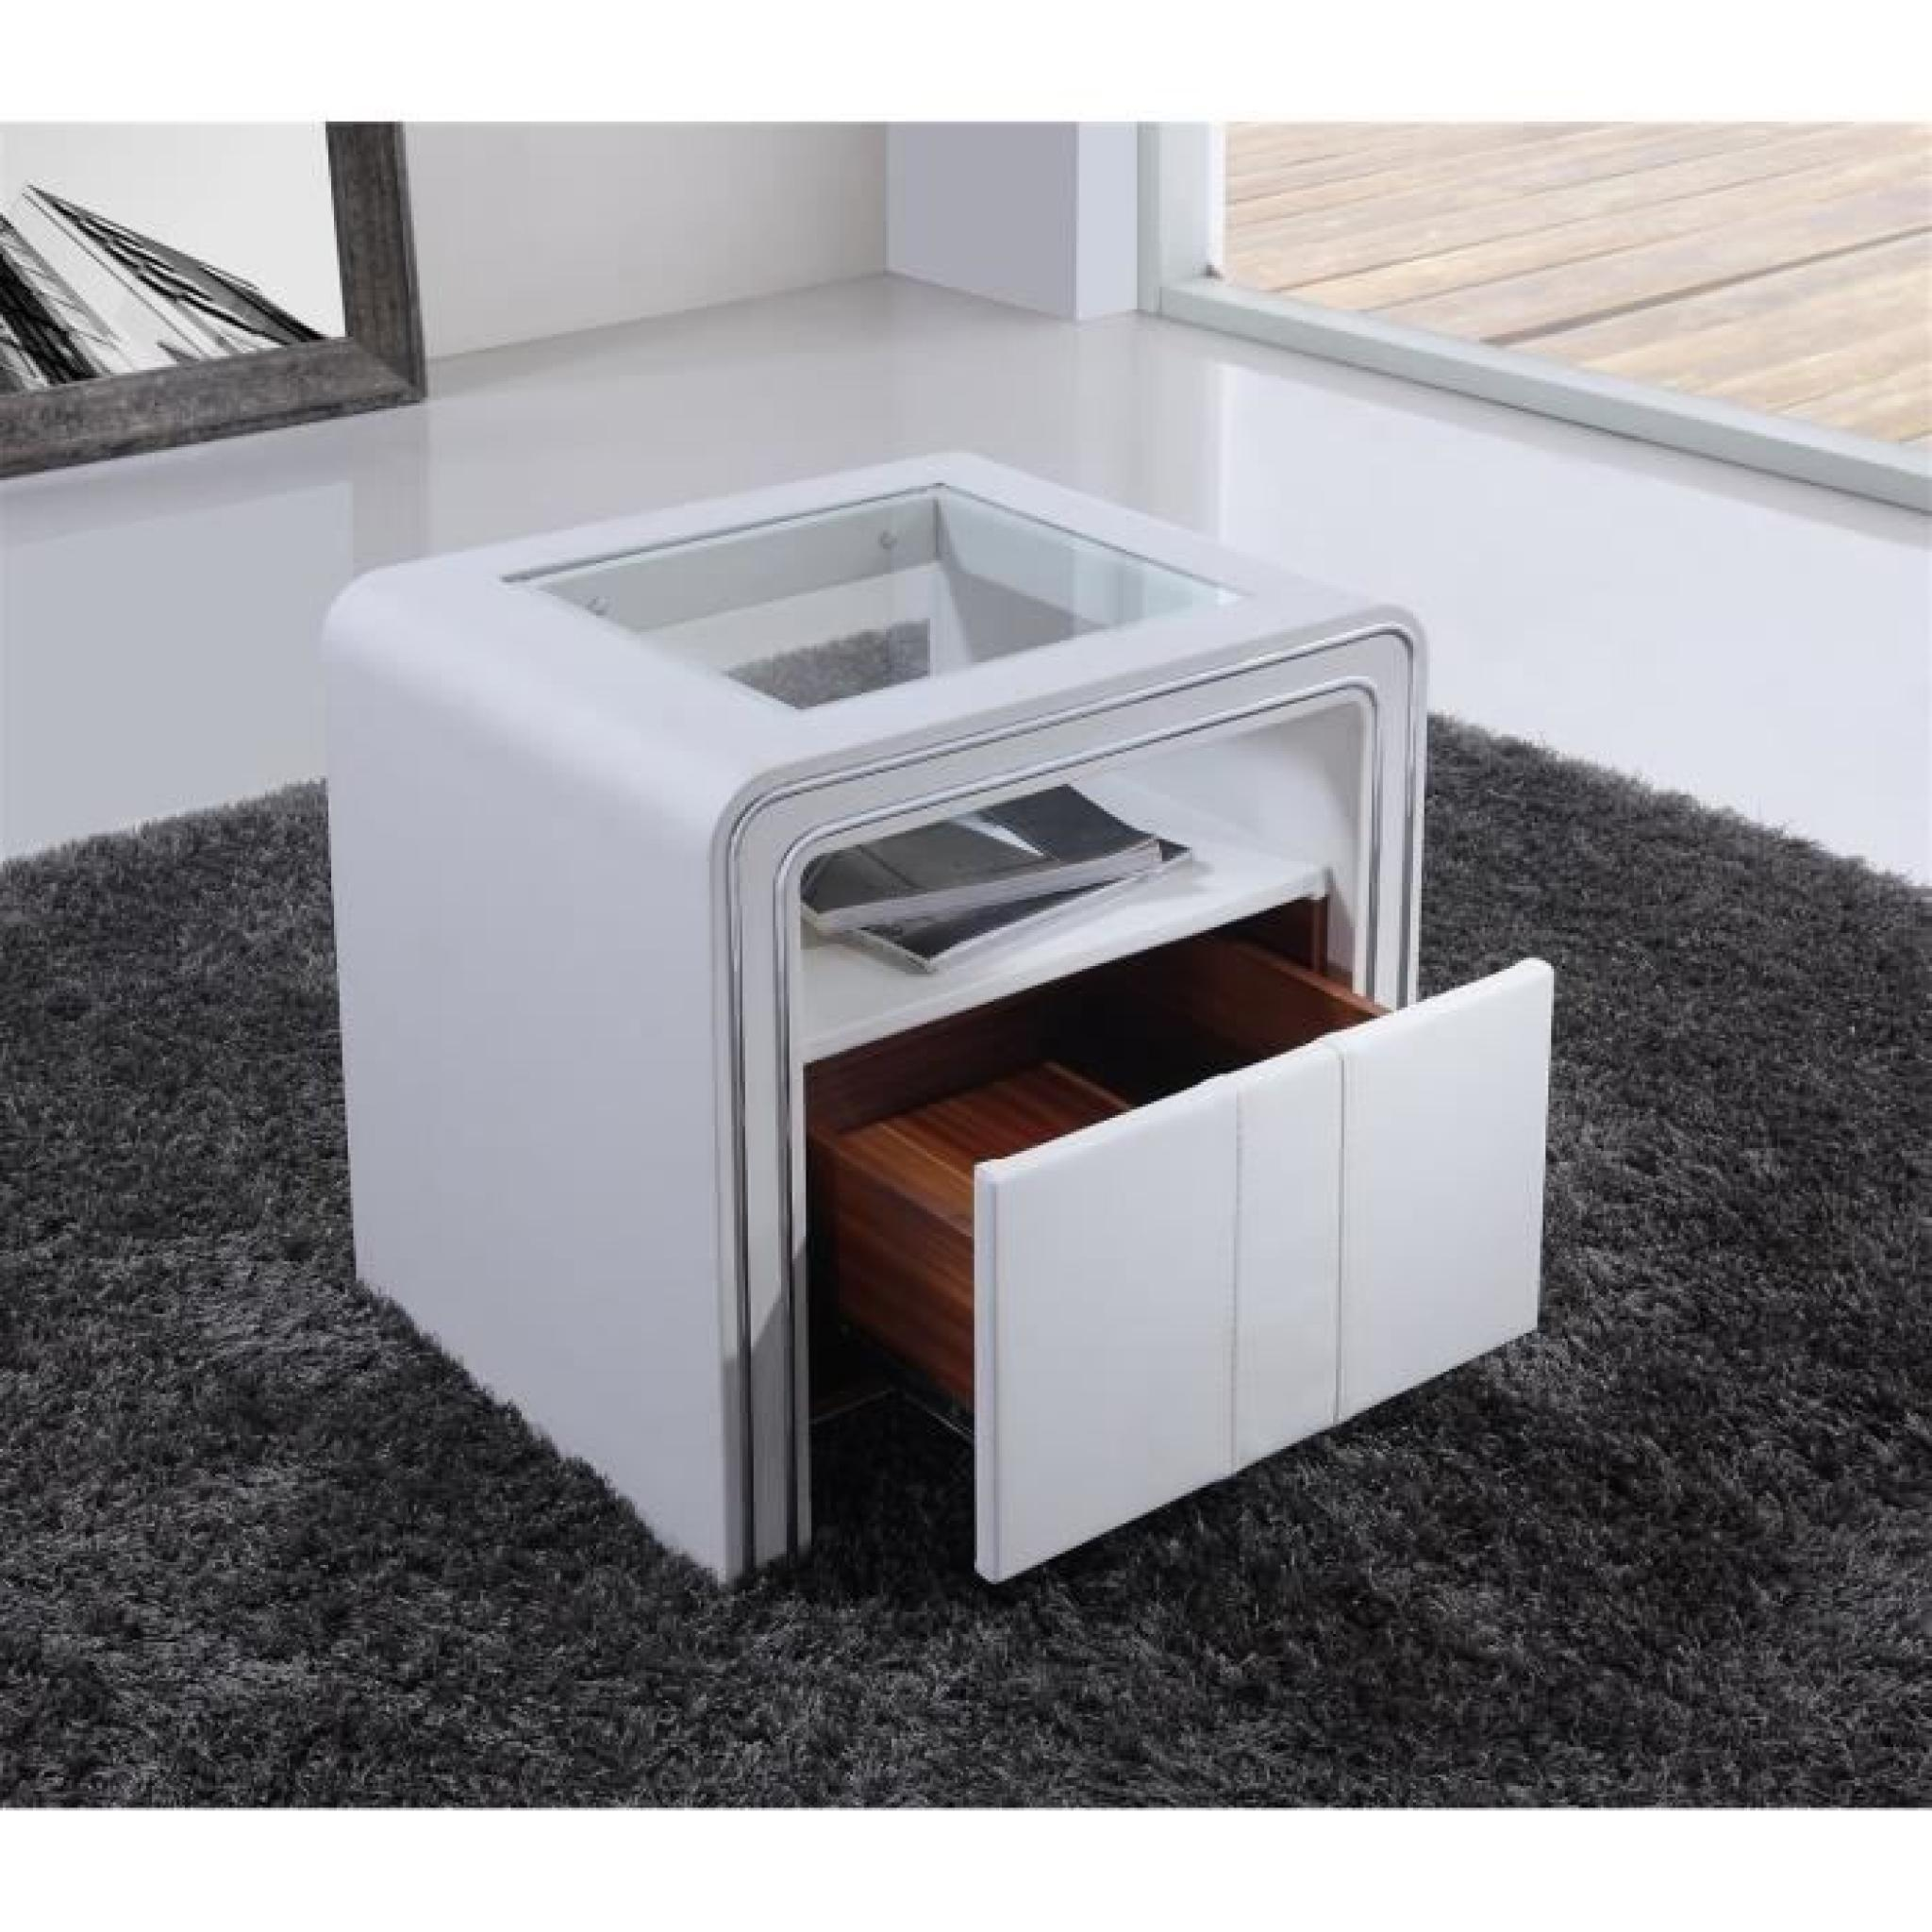 Table de chevet s85 blanc simili cuir achat vente table - Table de chevet en simili cuir ...